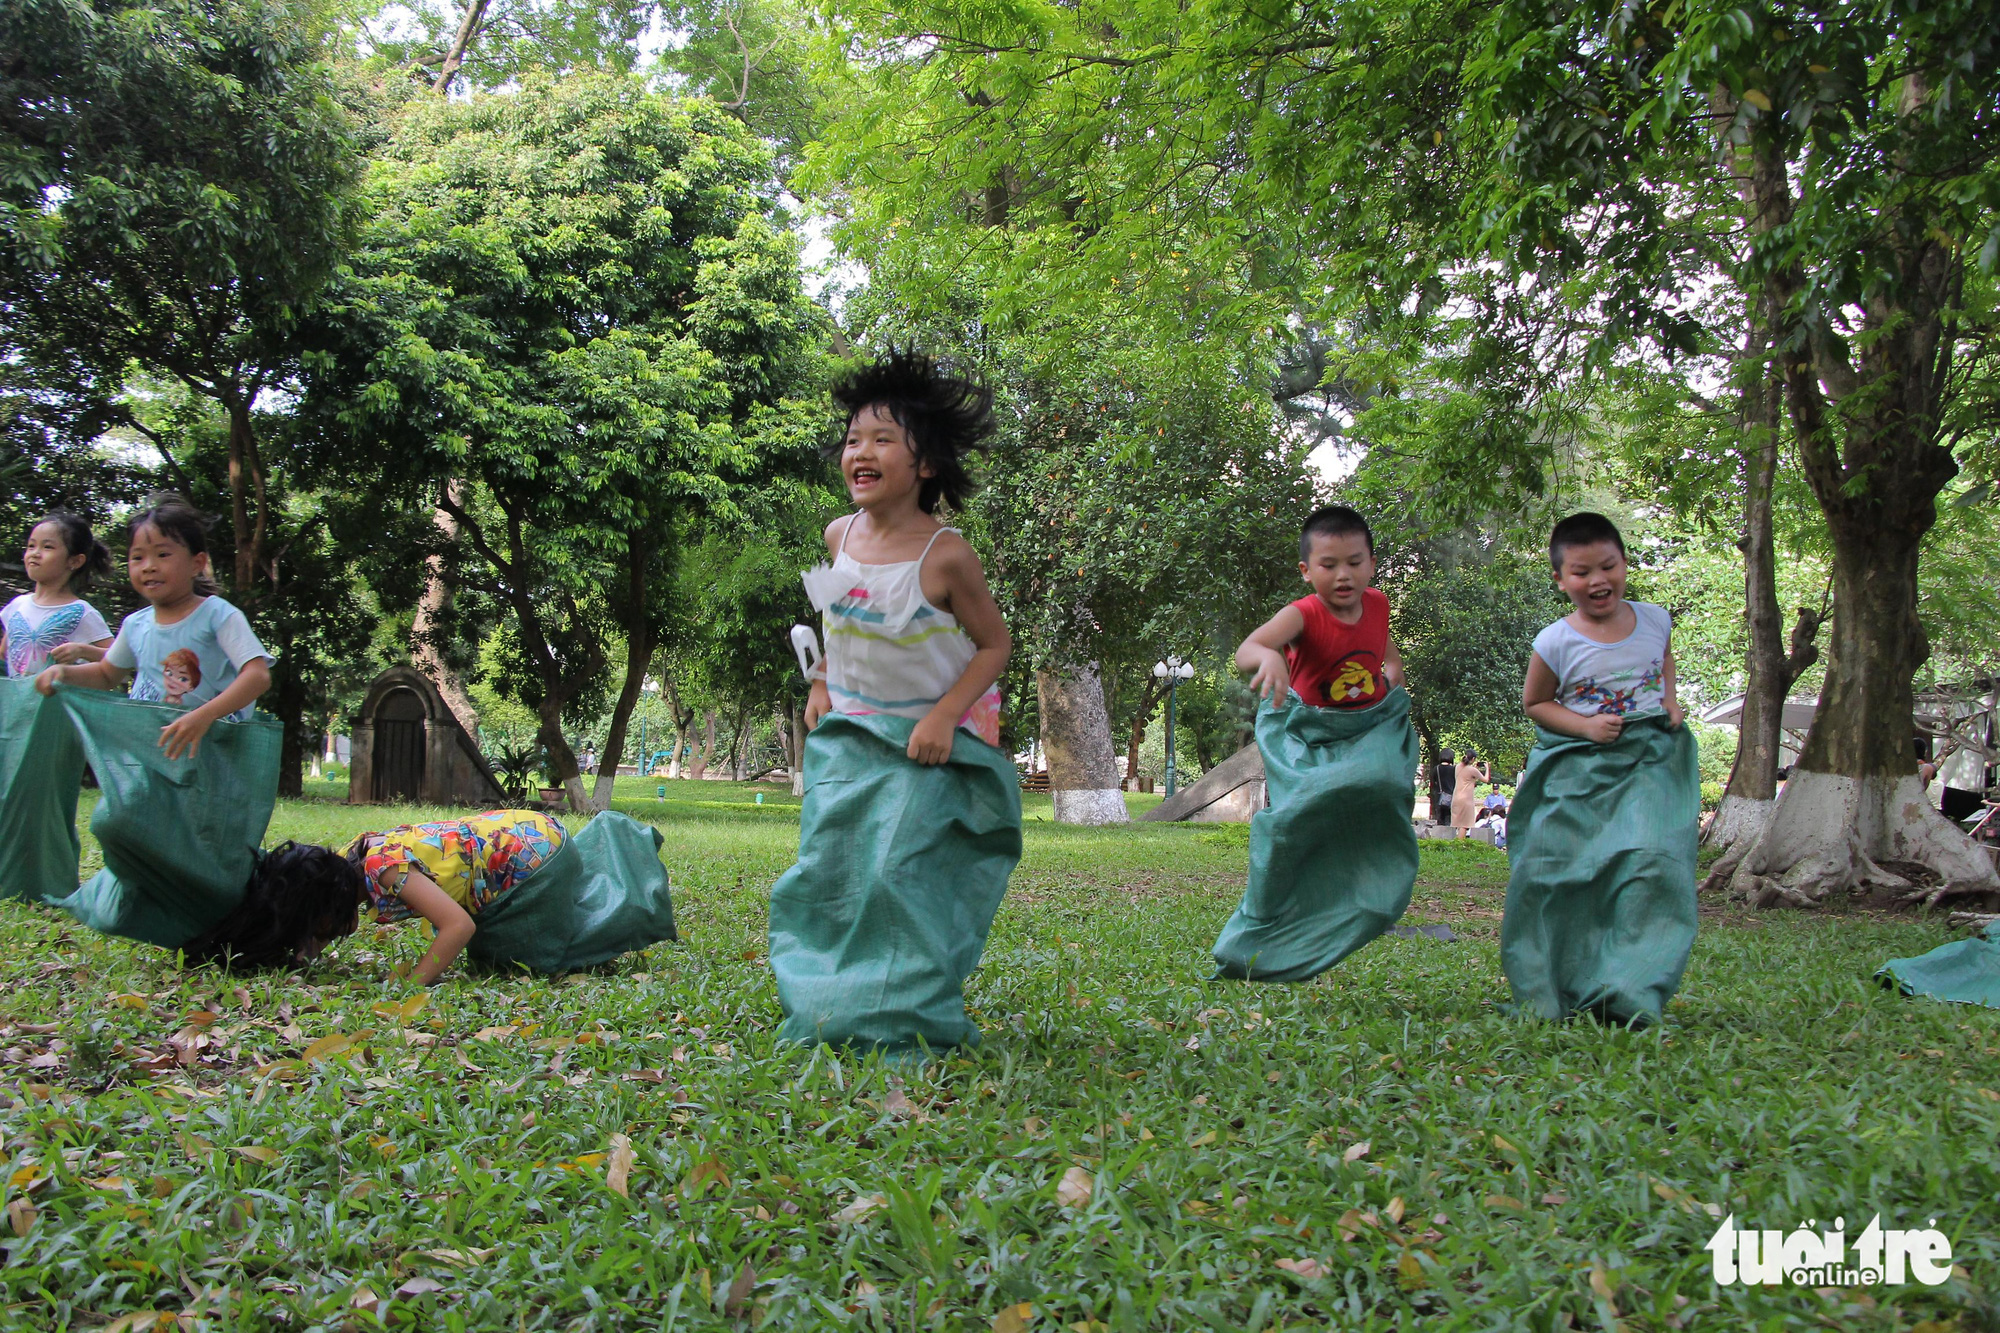 Children's innocent happiness in Hanoi's 'kingdom of recycled materials'